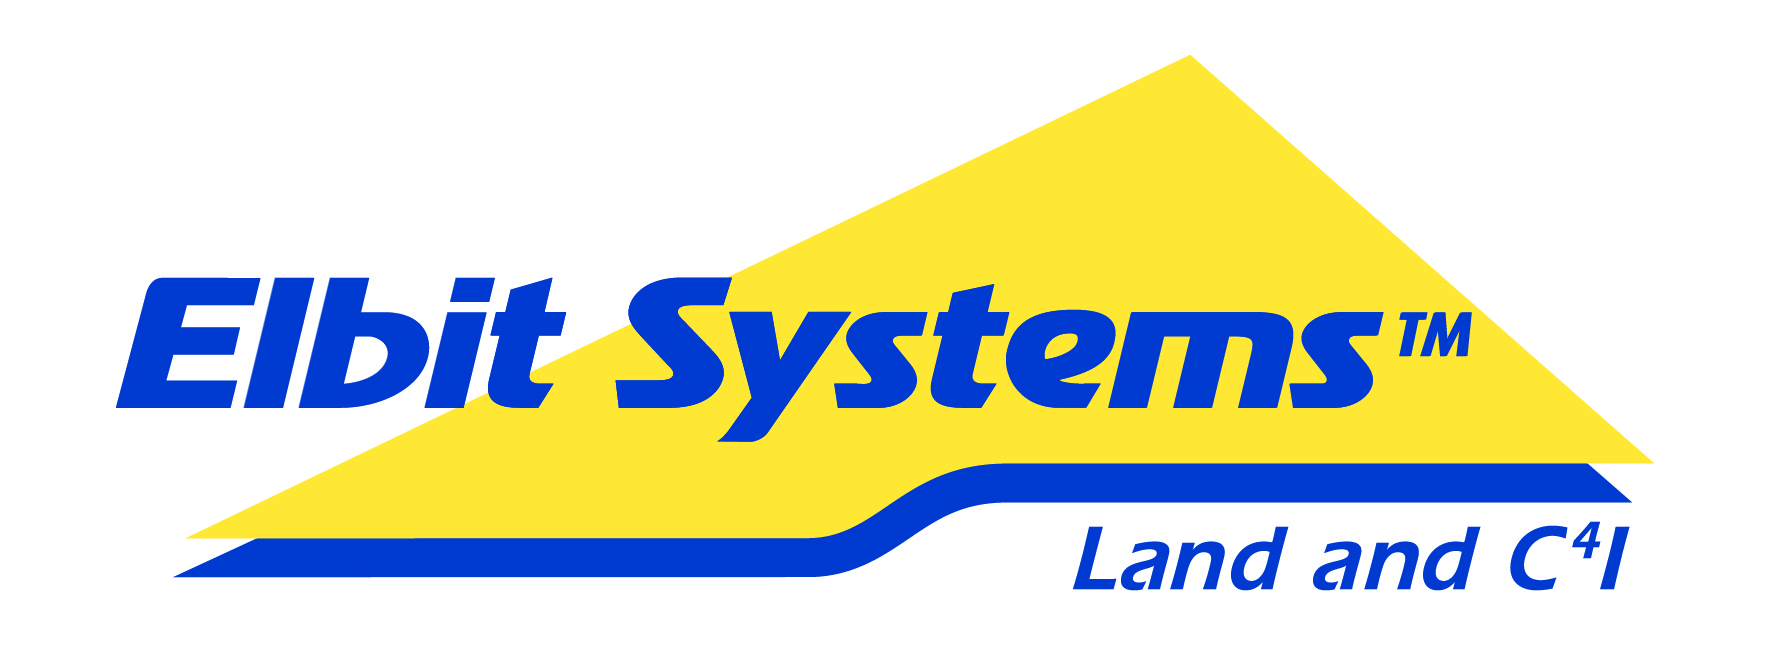 Elbit Systems Land and C4I